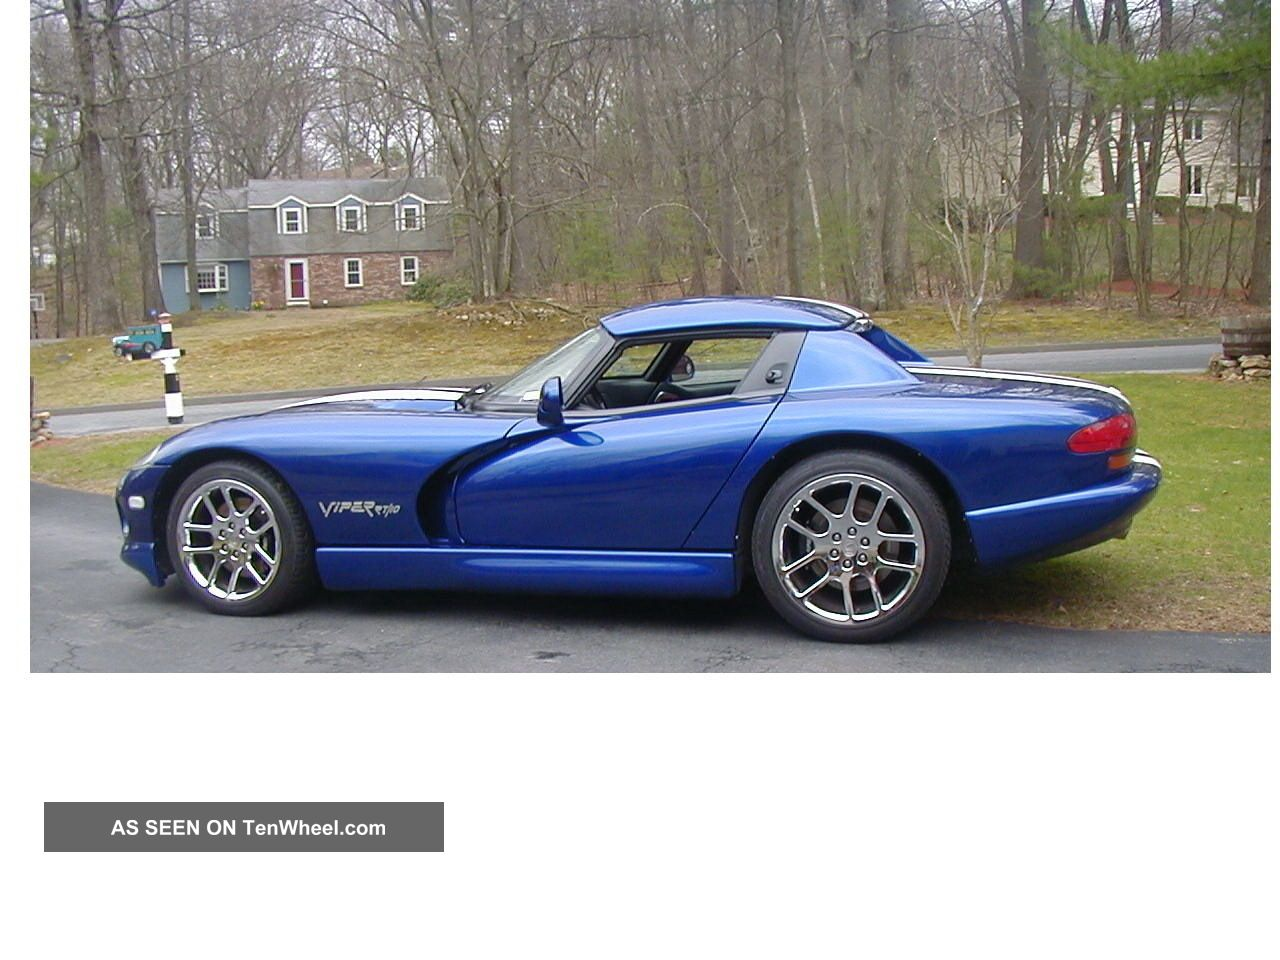 Stunning Rt10 1999 Dodge Viper Roadster / Convertible W / Hardtop & Many Extra ' S Viper photo